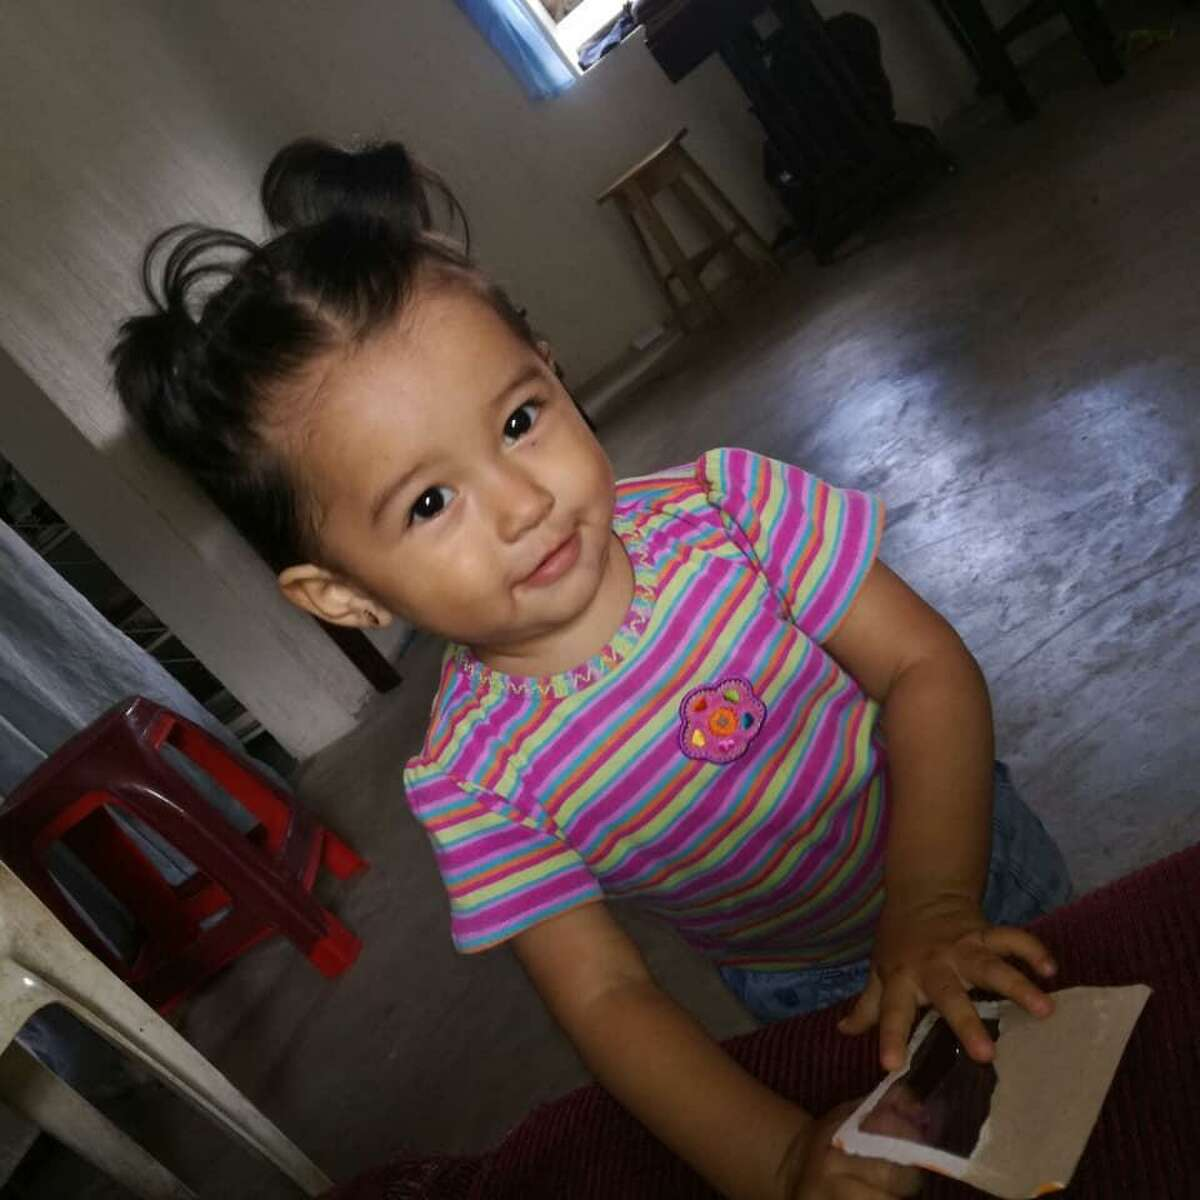 Yazmin Juarez's daughter Mariee, the toddler who died at a Pennsylvania hospital after staying at an immigrant facility in Dilley. The mother and her daughter fled Guatemala and crossed the U.S border to seek asylum.